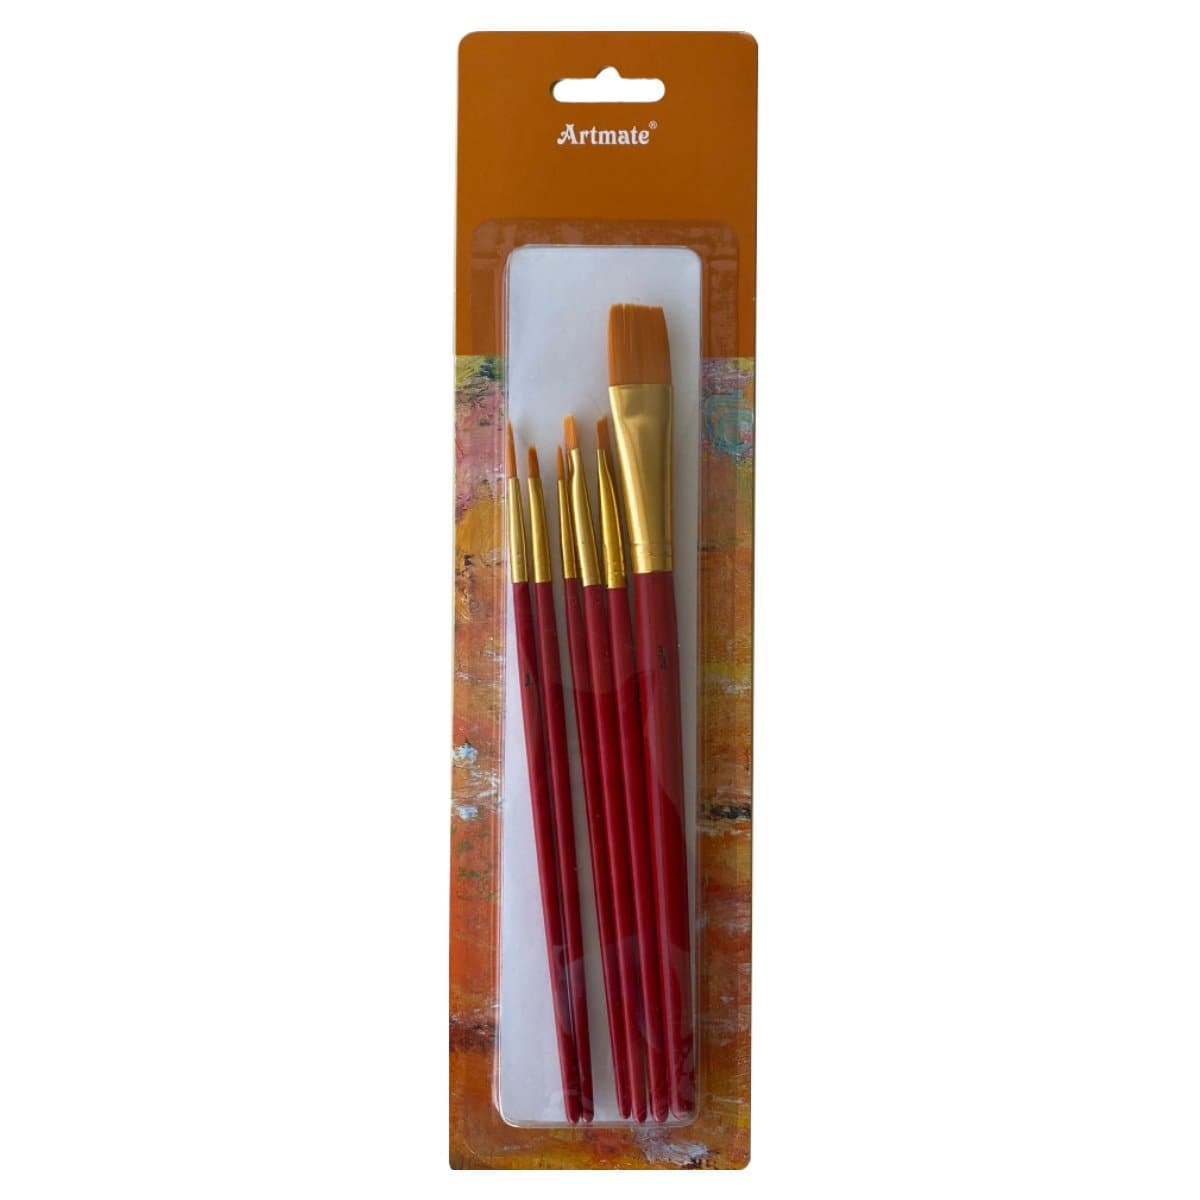 Artmate Paint Brushes, 7/set